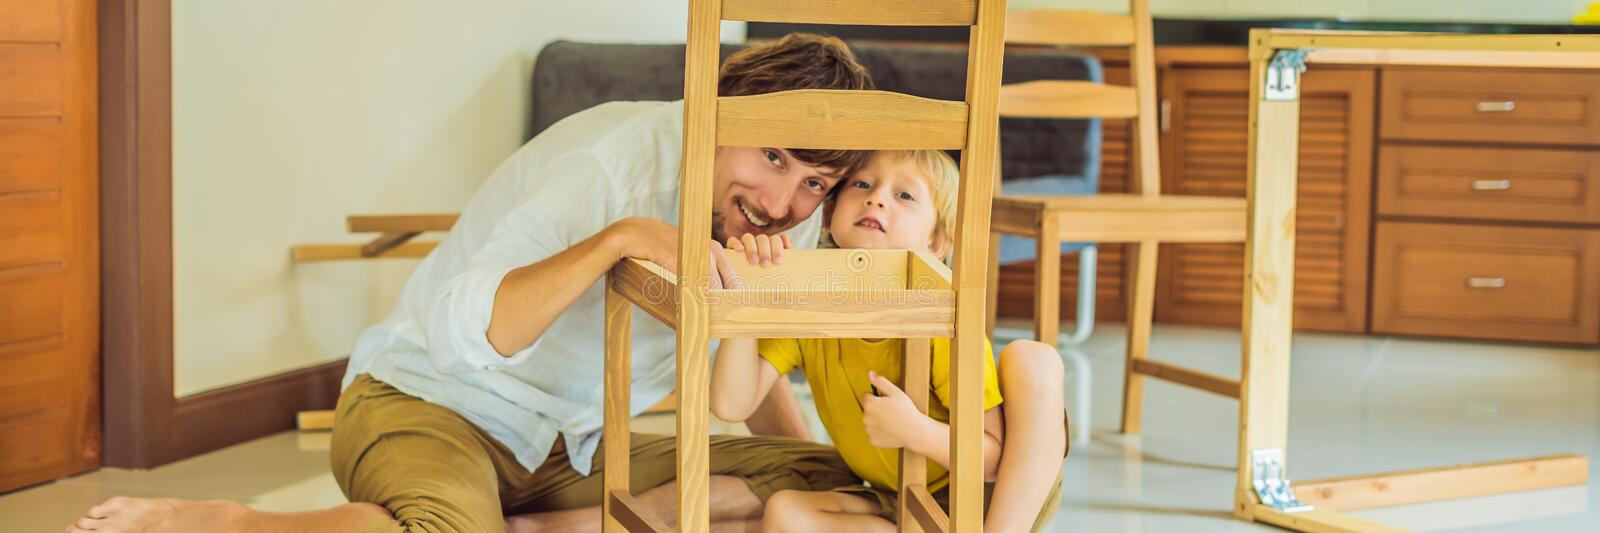 Father and son assembling furniture. Boy helping his dad at home. Happy Family concept BANNER, LONG FORMAT. Father and son assembling furniture. Boy helping his royalty free stock image